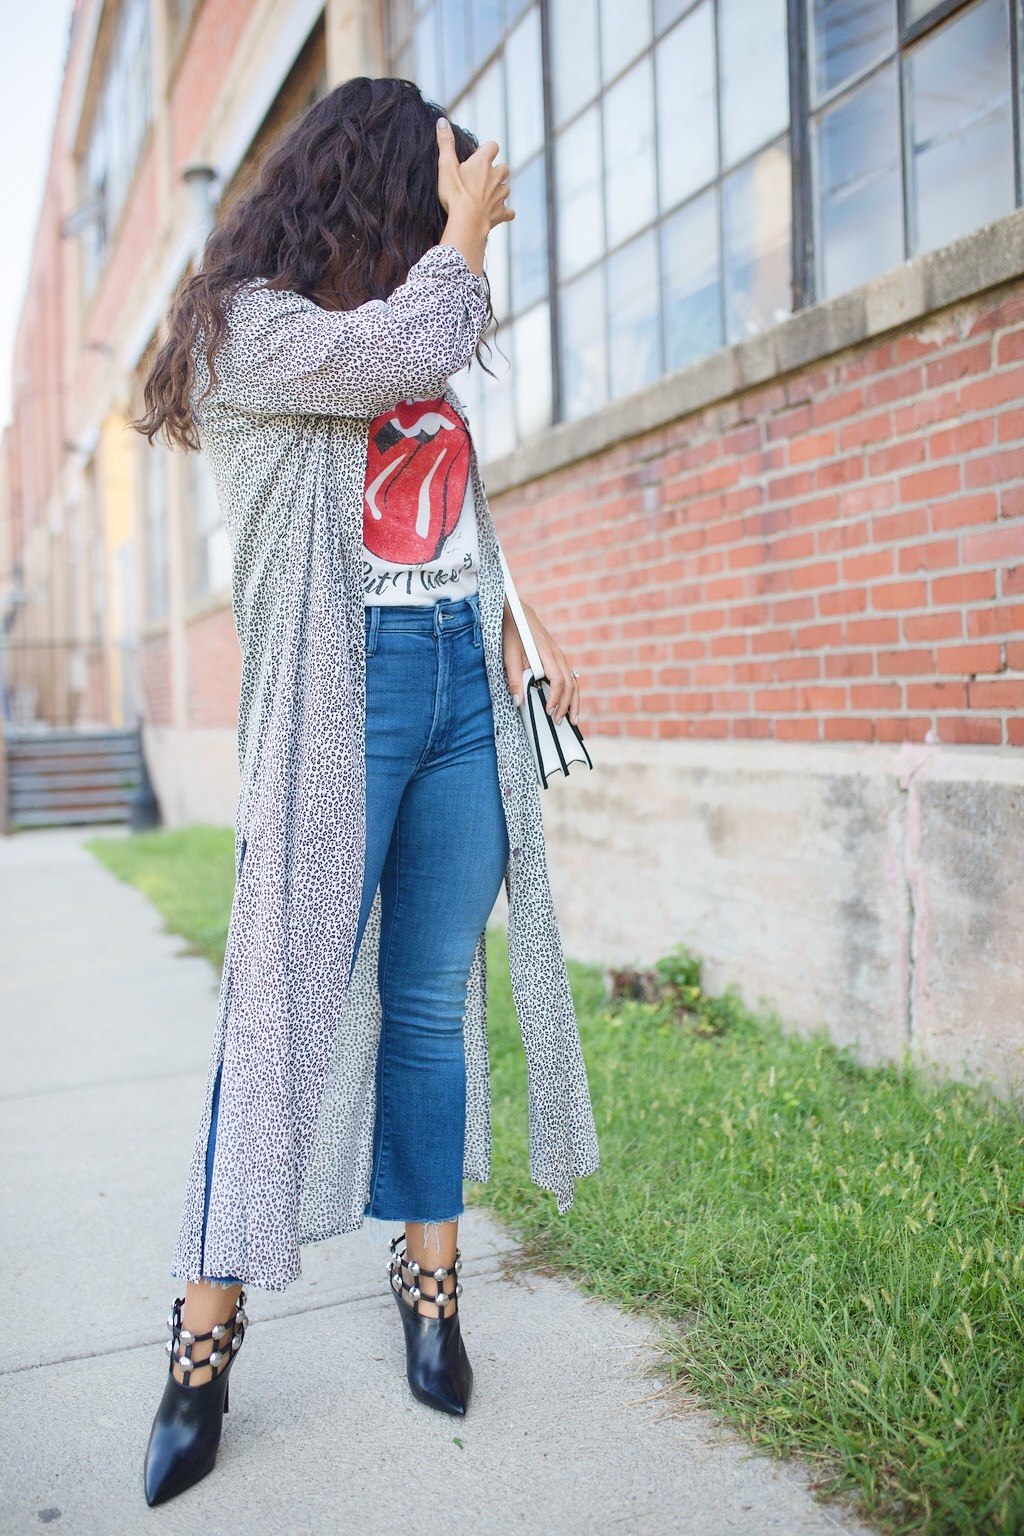 graphic tee and jeans